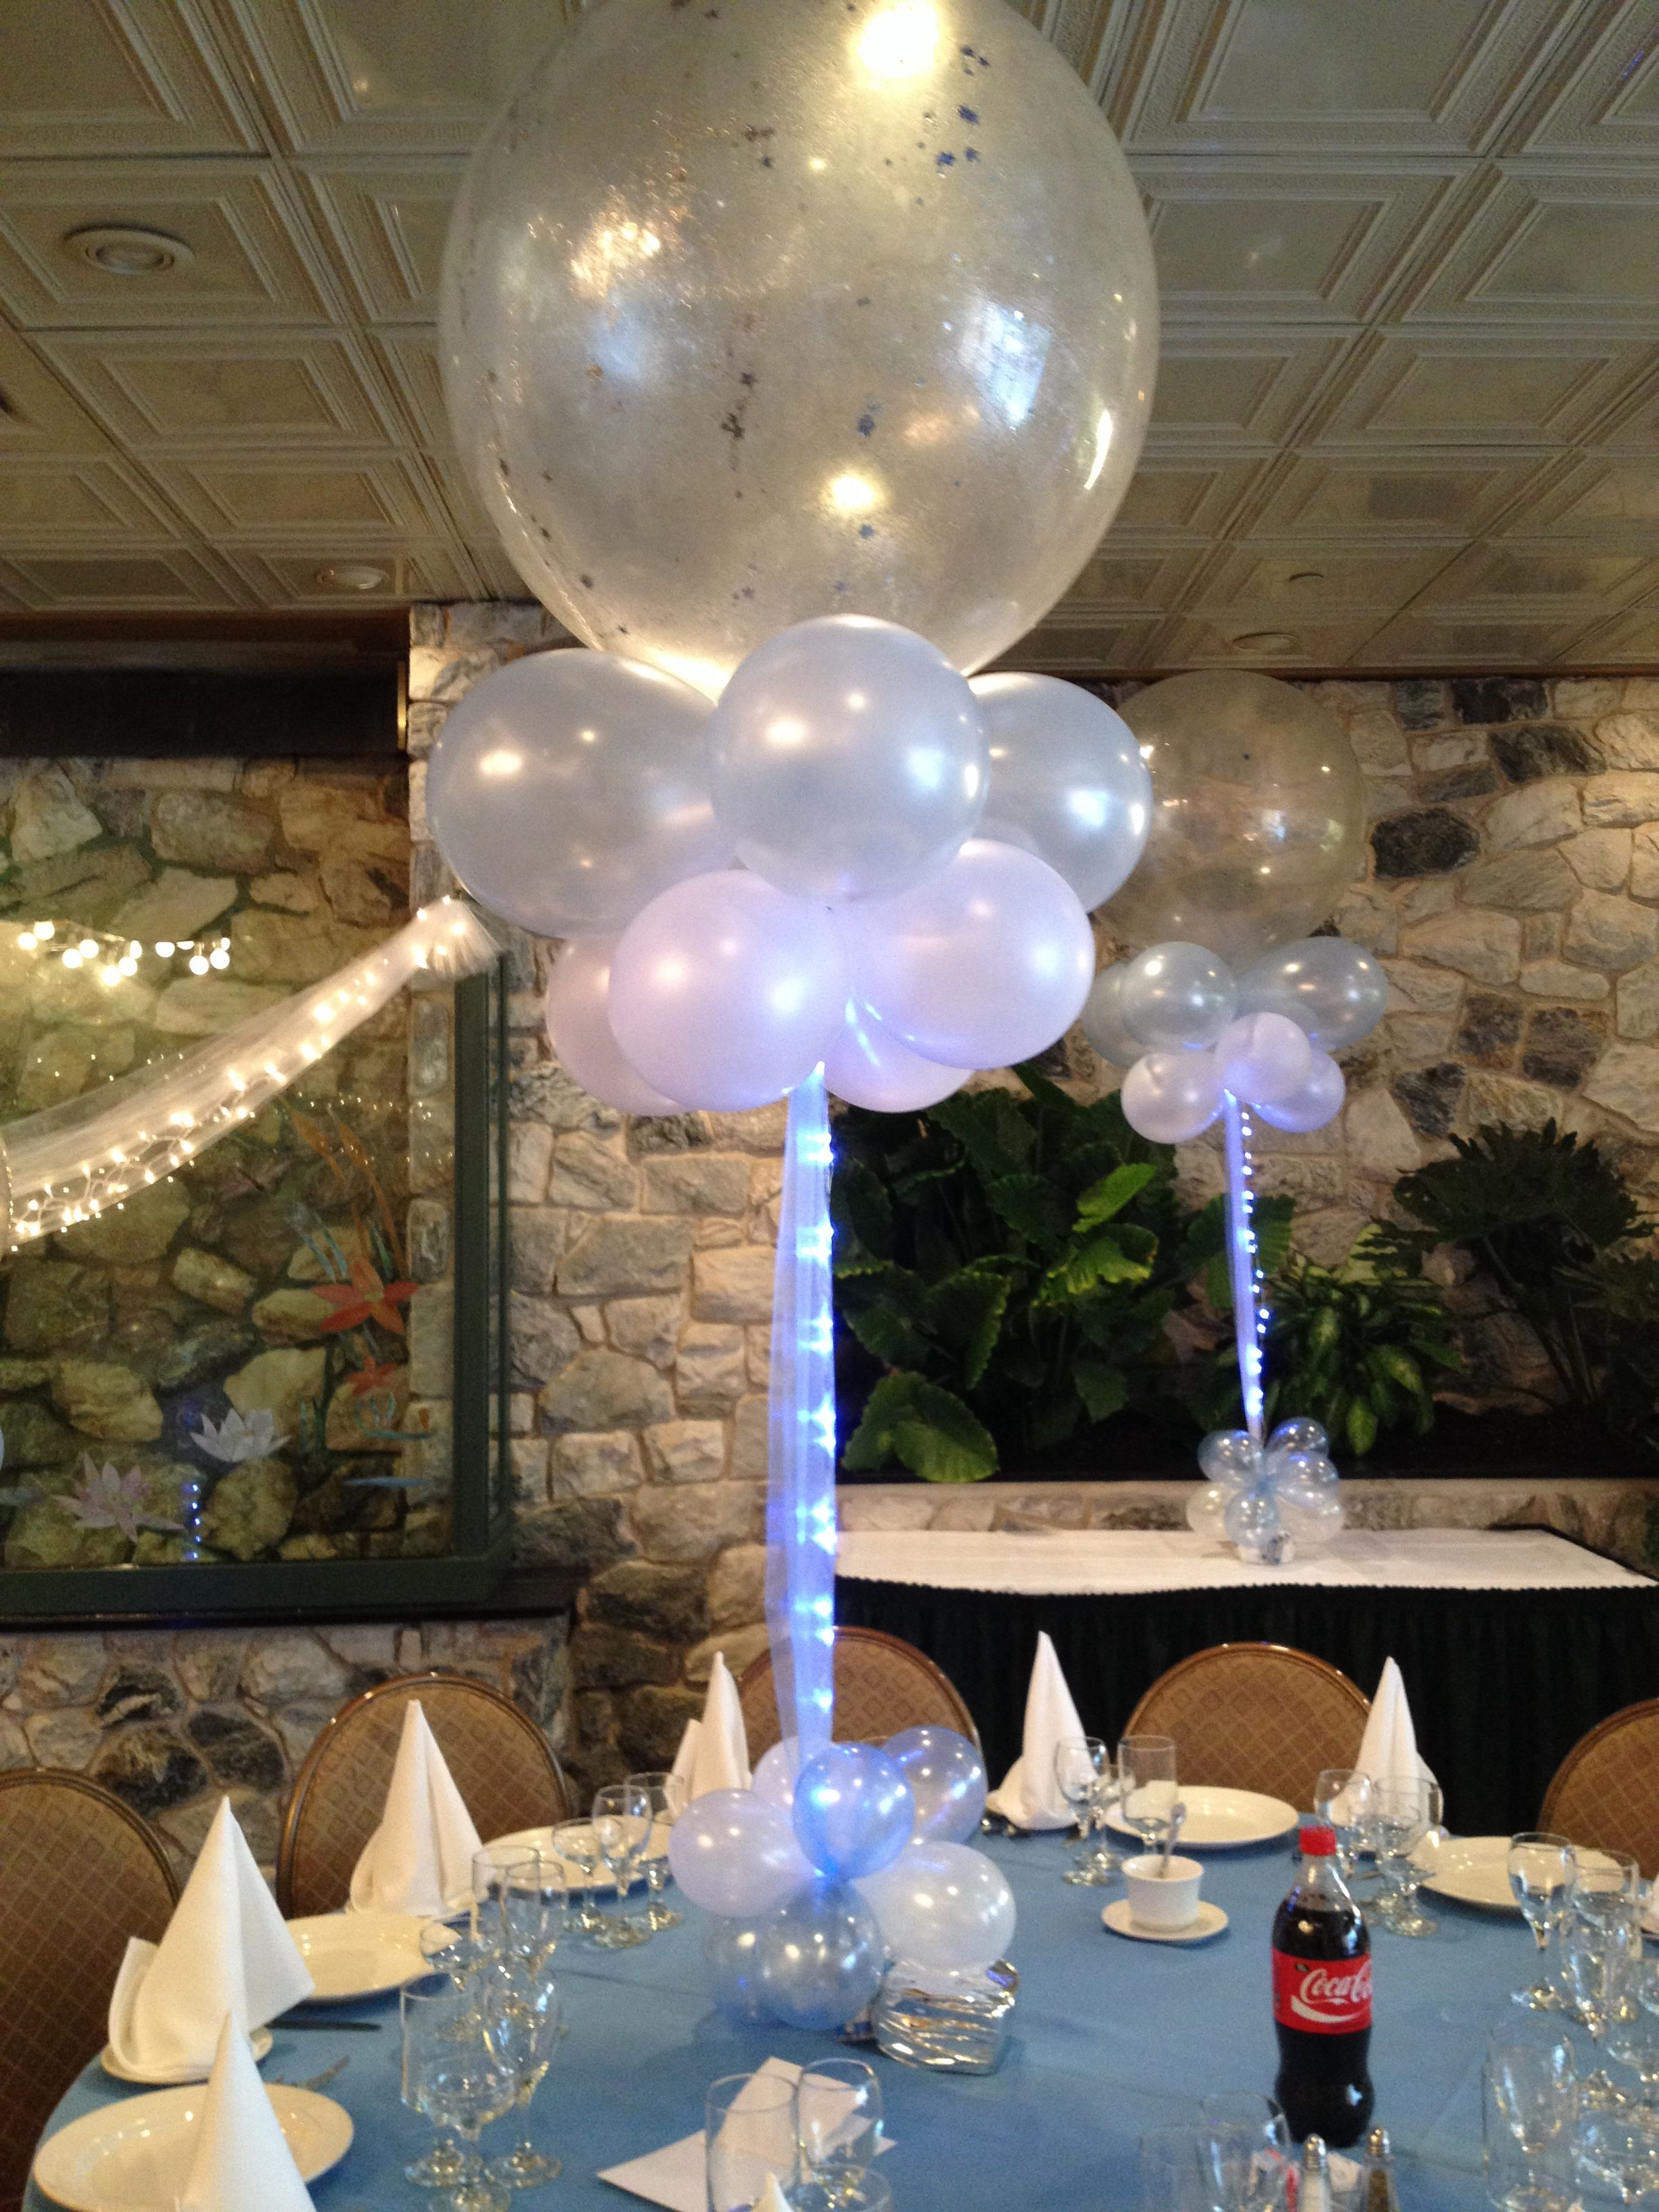 Balloon centerpiece balloon decorations pinterest for Balloons arrangement decoration